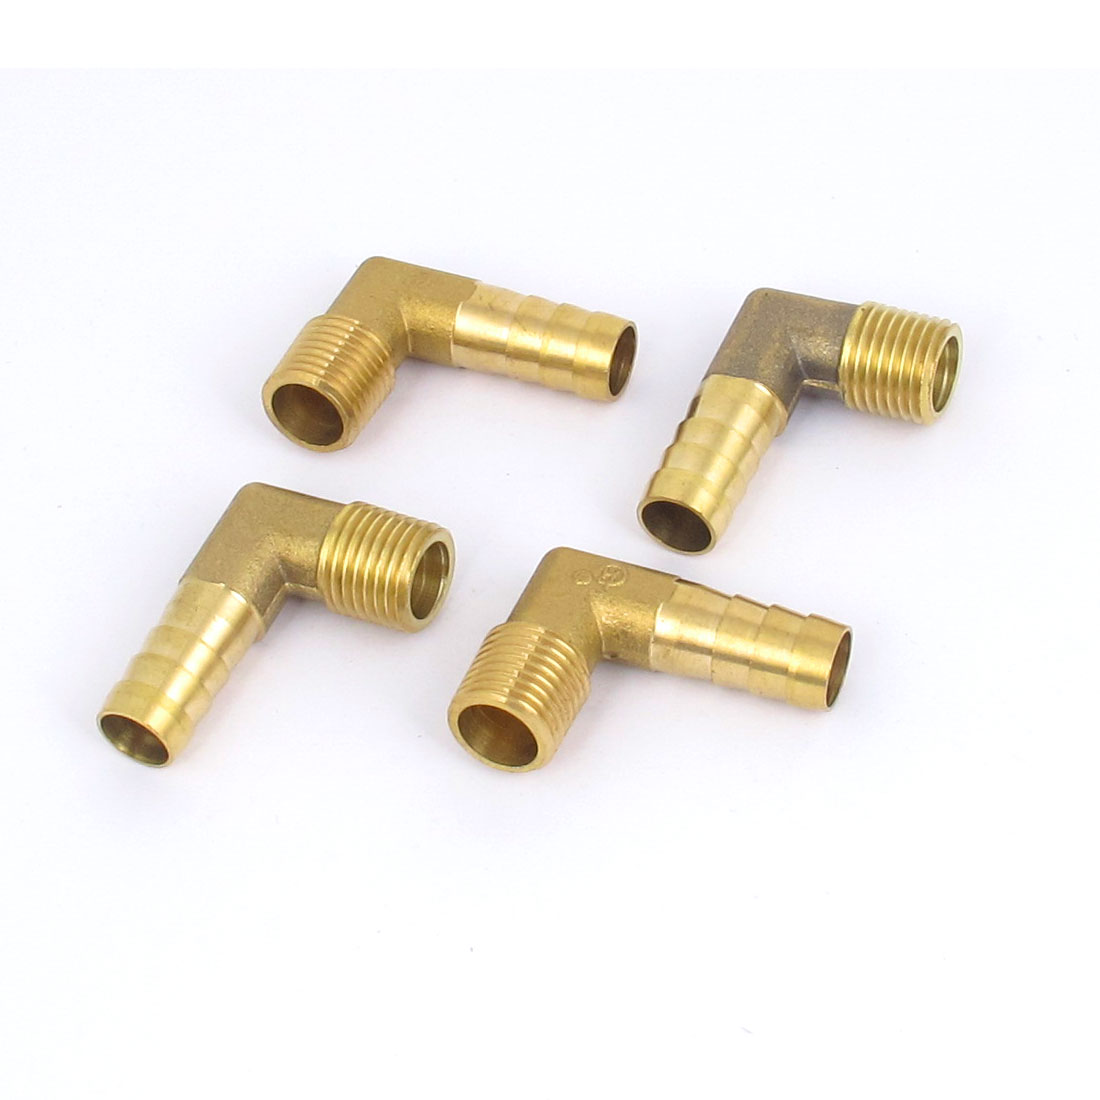 1/4BSP Thread 10mm Tube Dia 90 Degree Brass Hose Barb Coupler Connector 4pcs